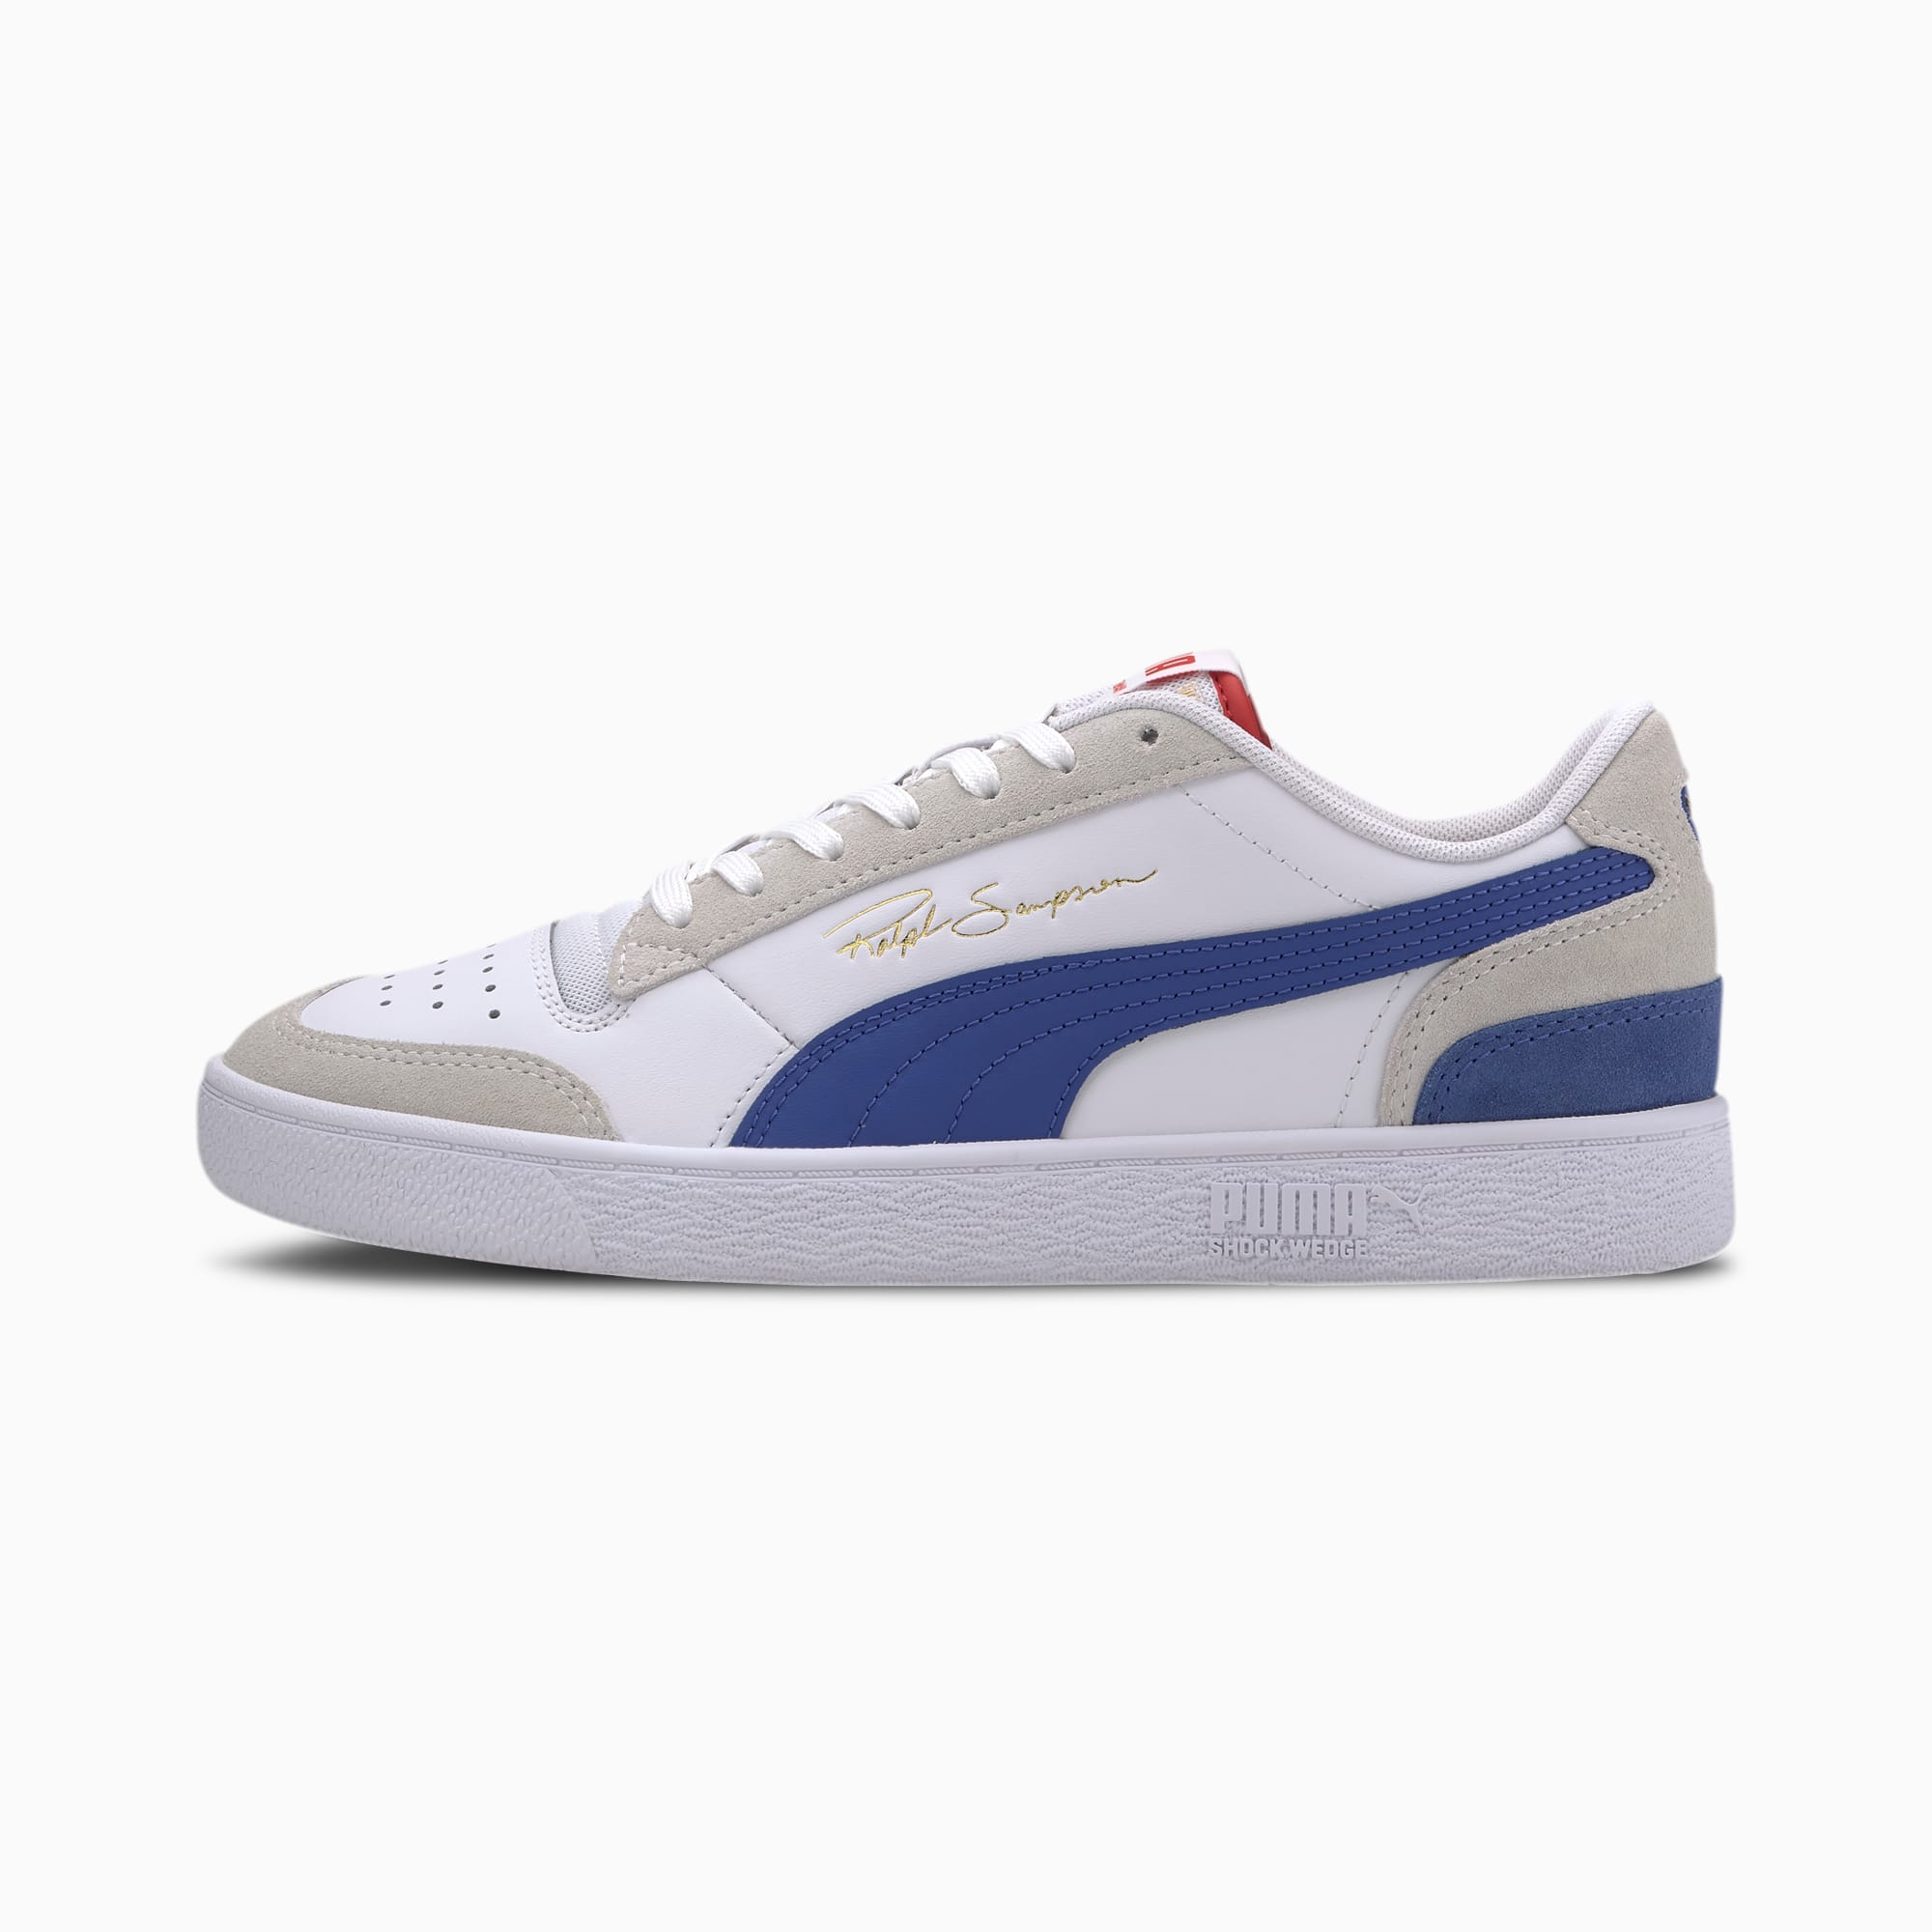 chaussure basket ralph sampson lo vintage, blanc, taille 36, chaussures